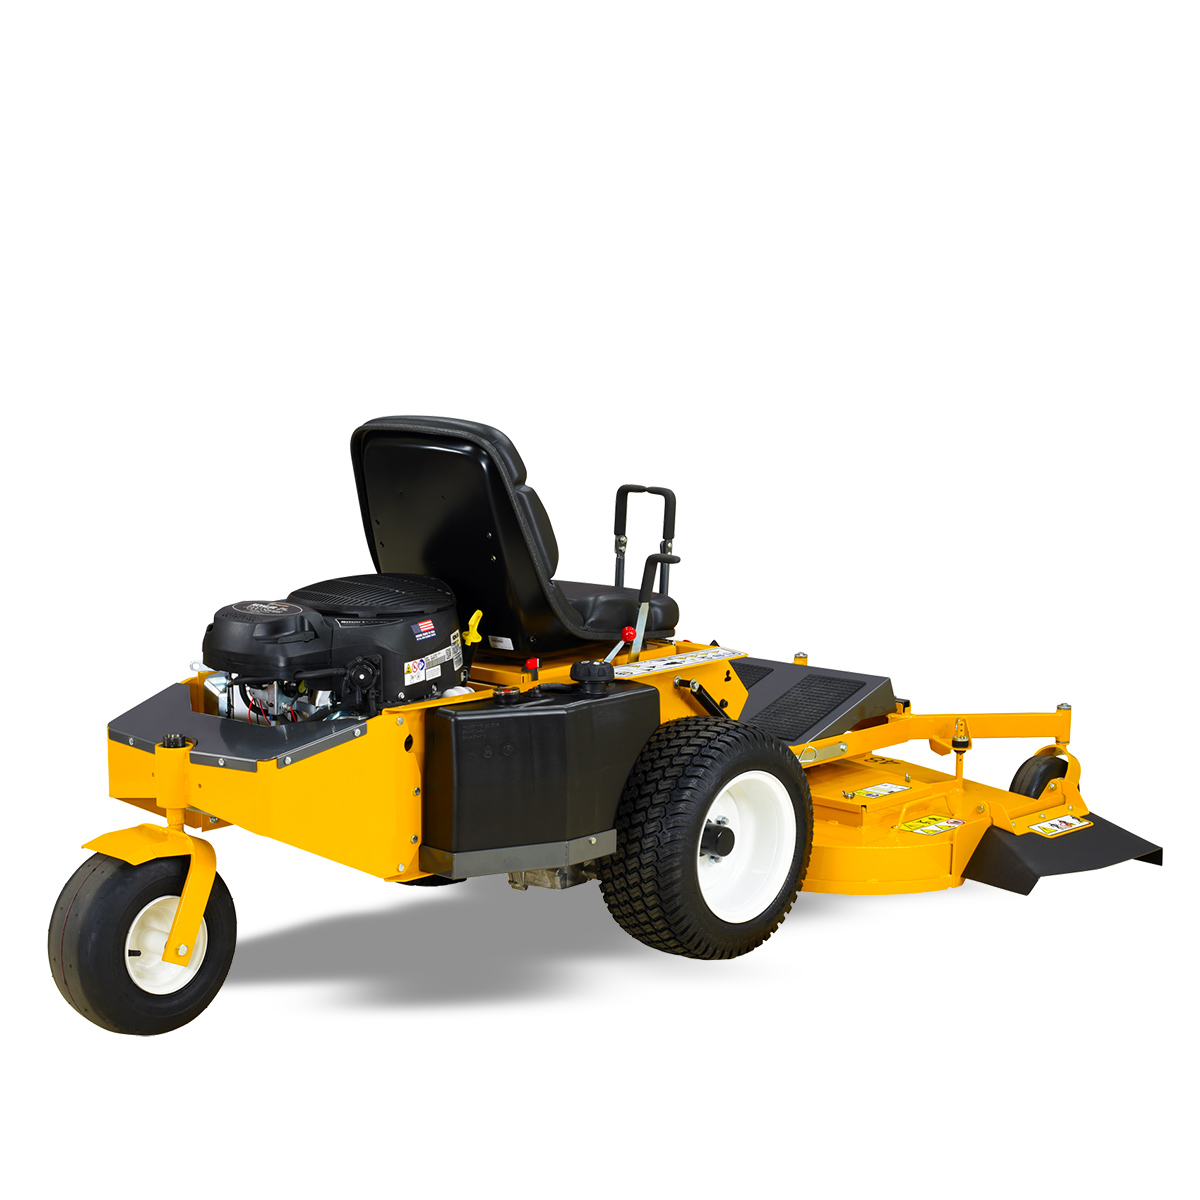 Walker Mower - rear 21 HP Kohler